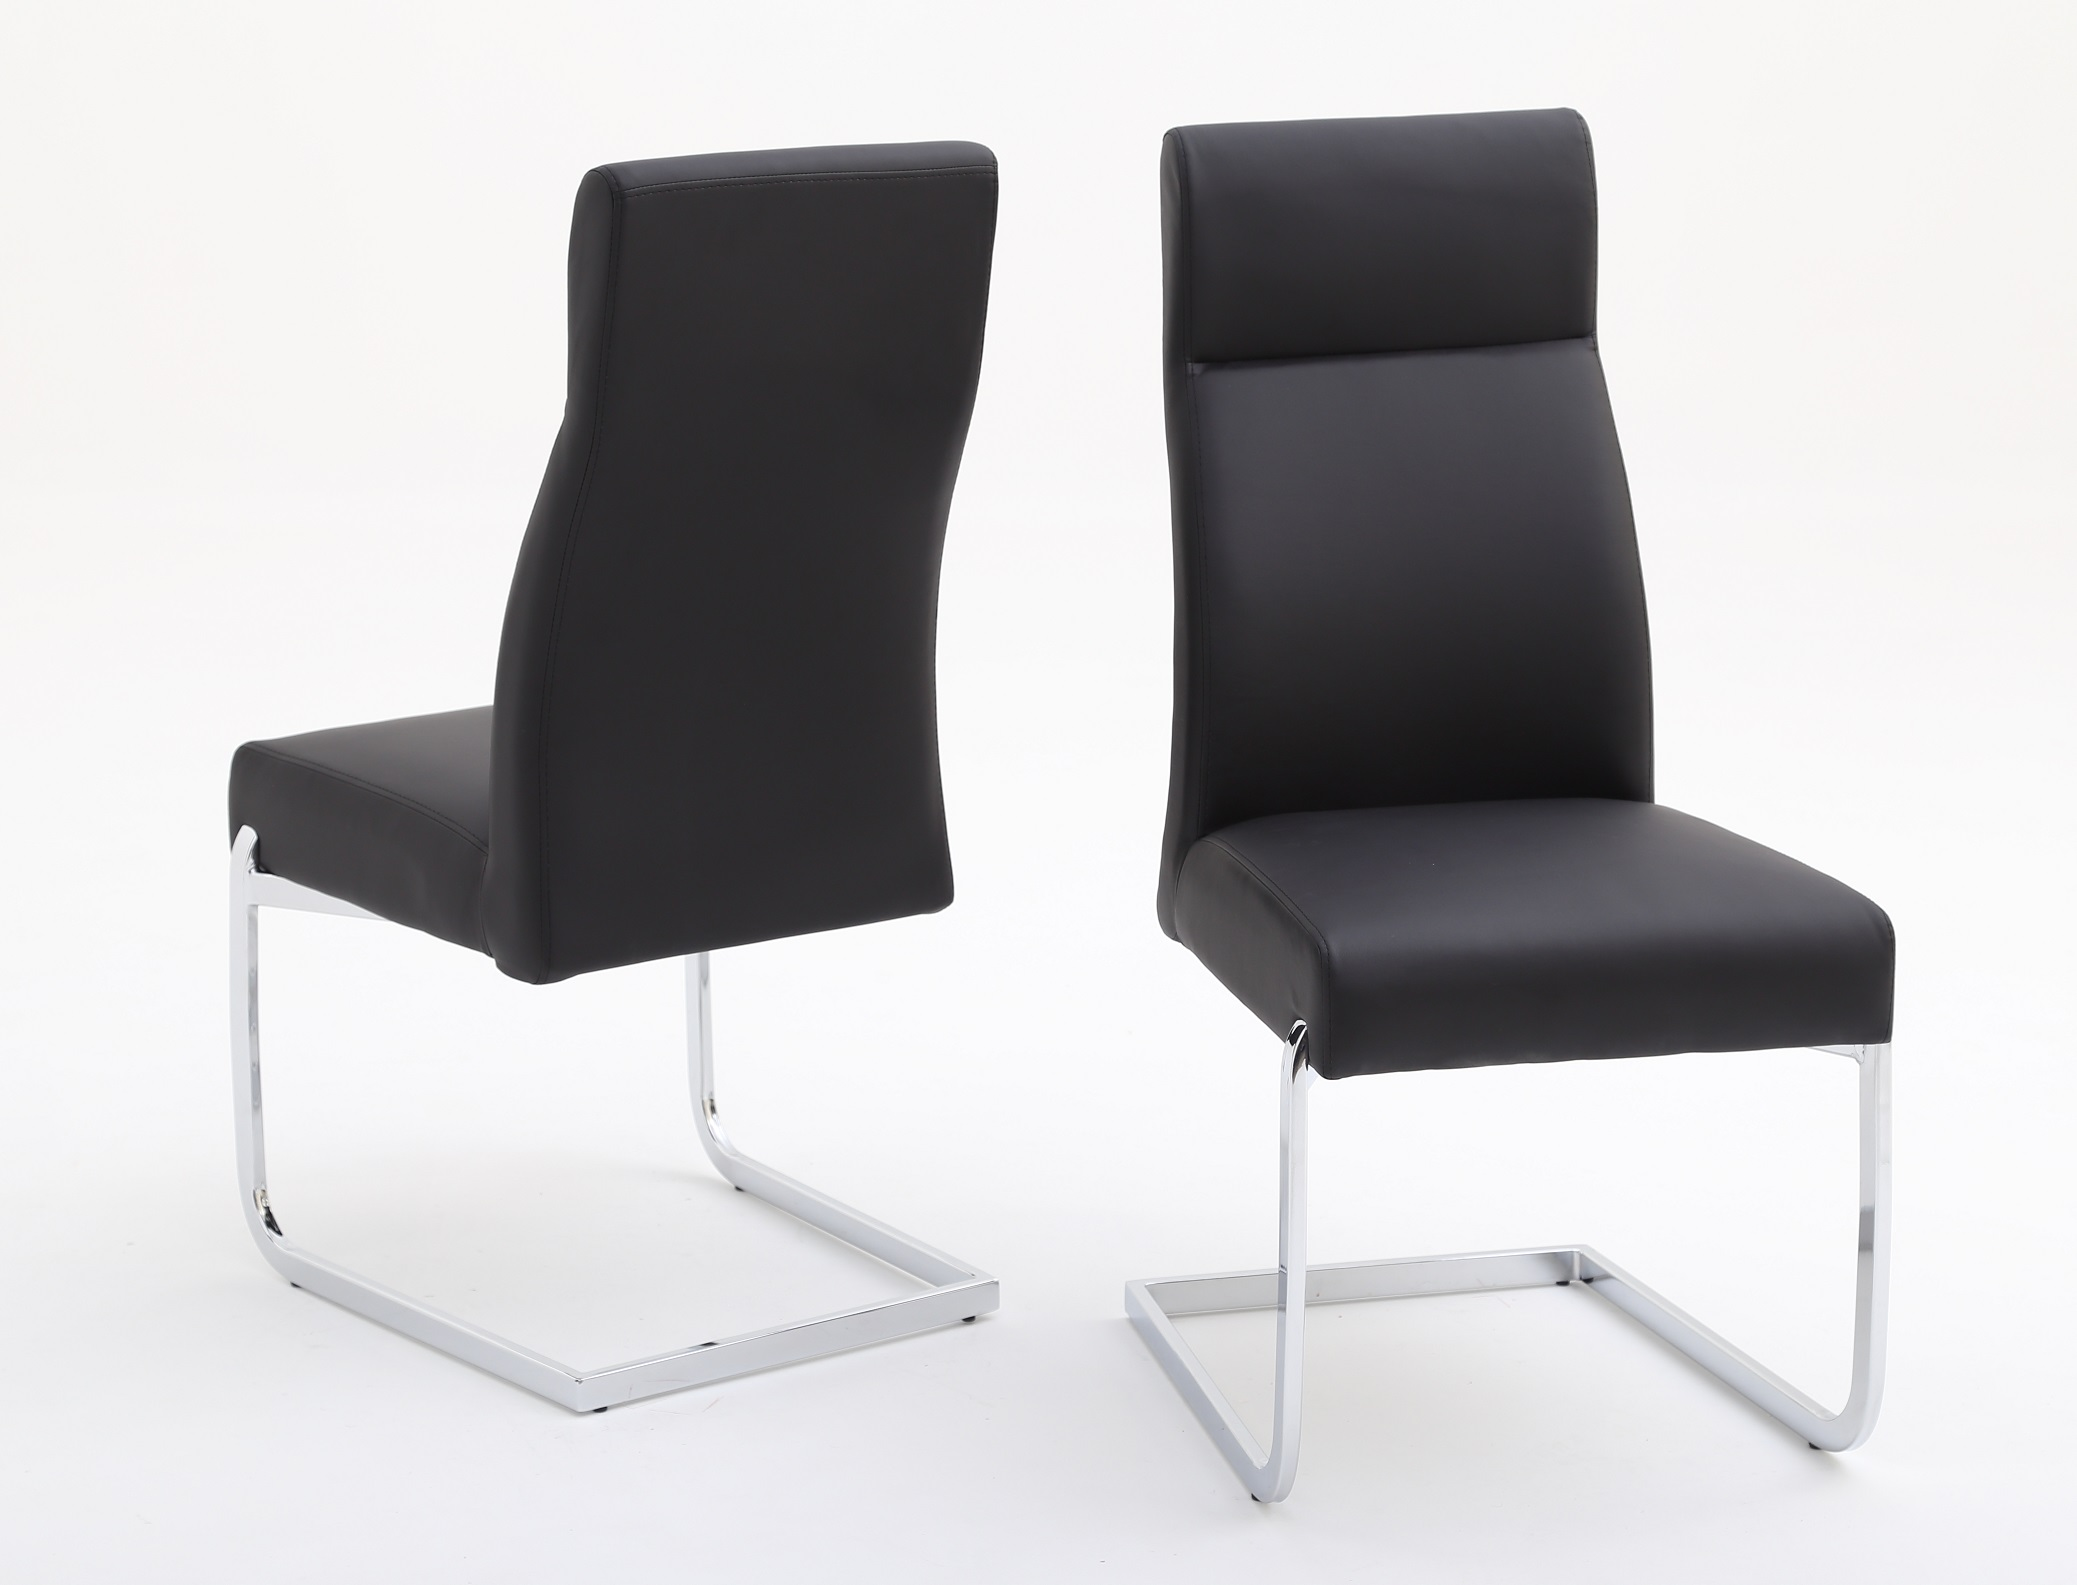 https://www.firstfurniture.co.uk/pub/media/catalog/product/d/a/dante_chair_black.jpg